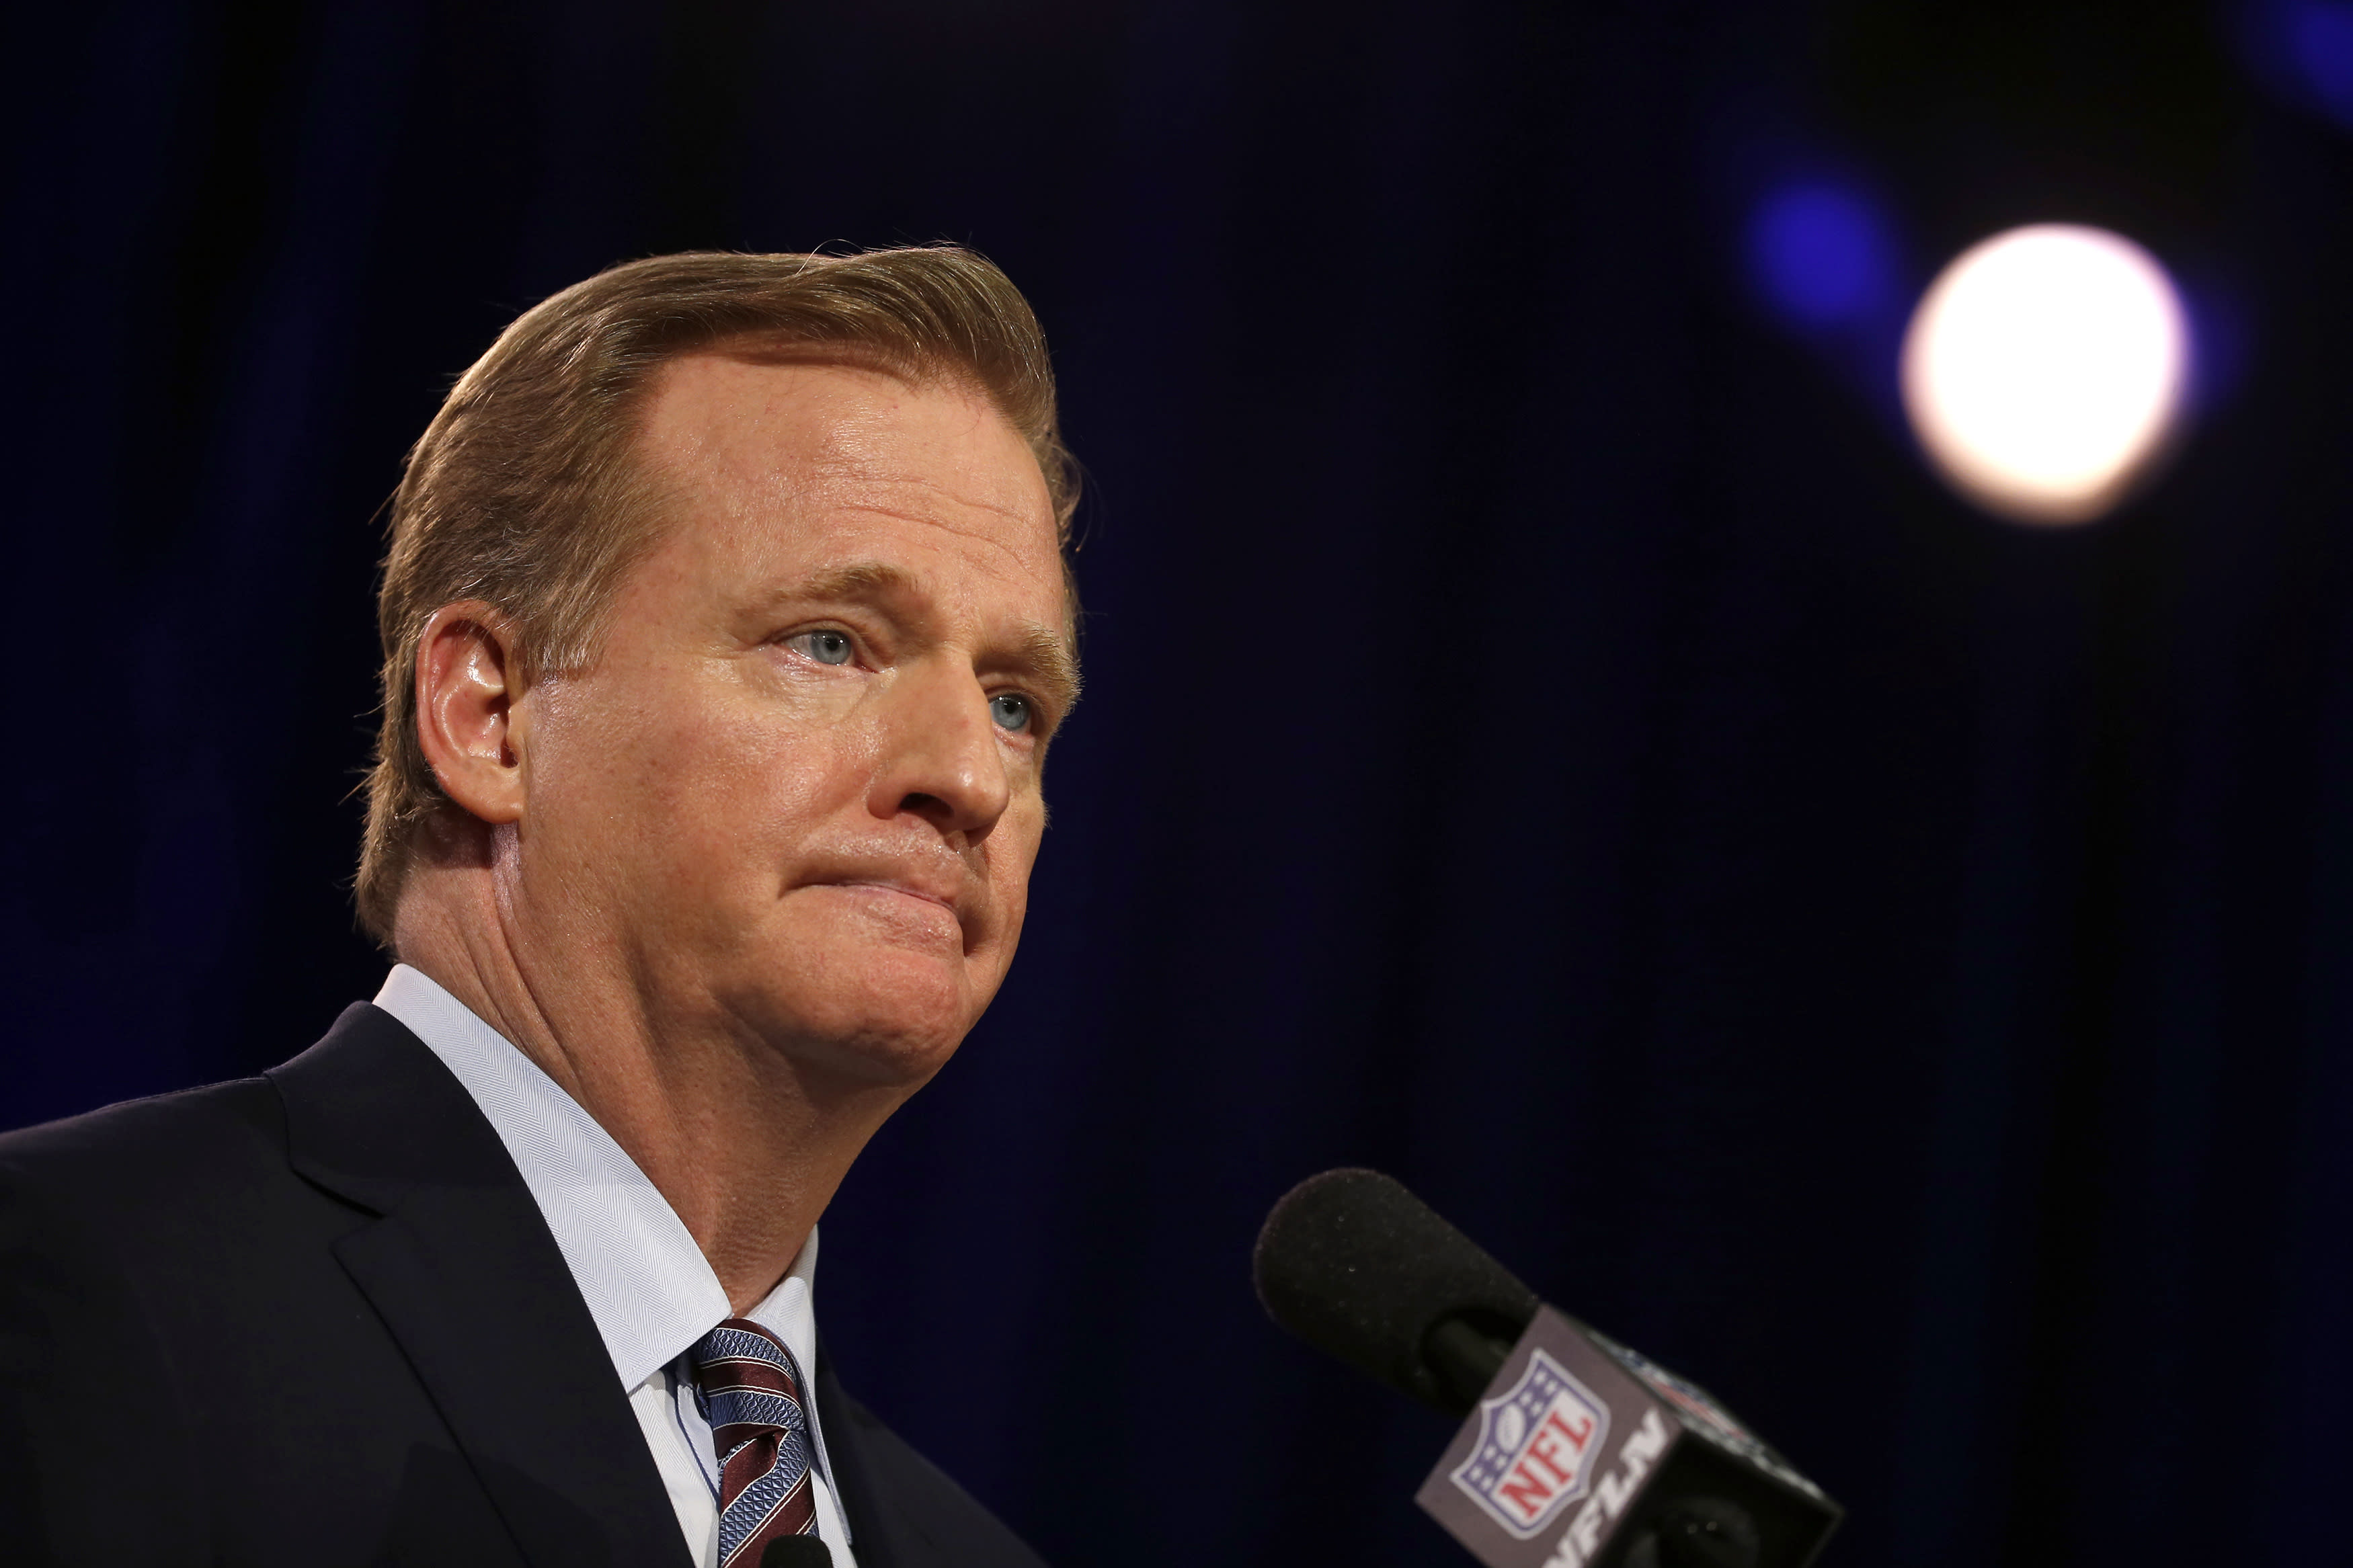 NFL owners will discuss changing Roger Goodell's role in disciplining players